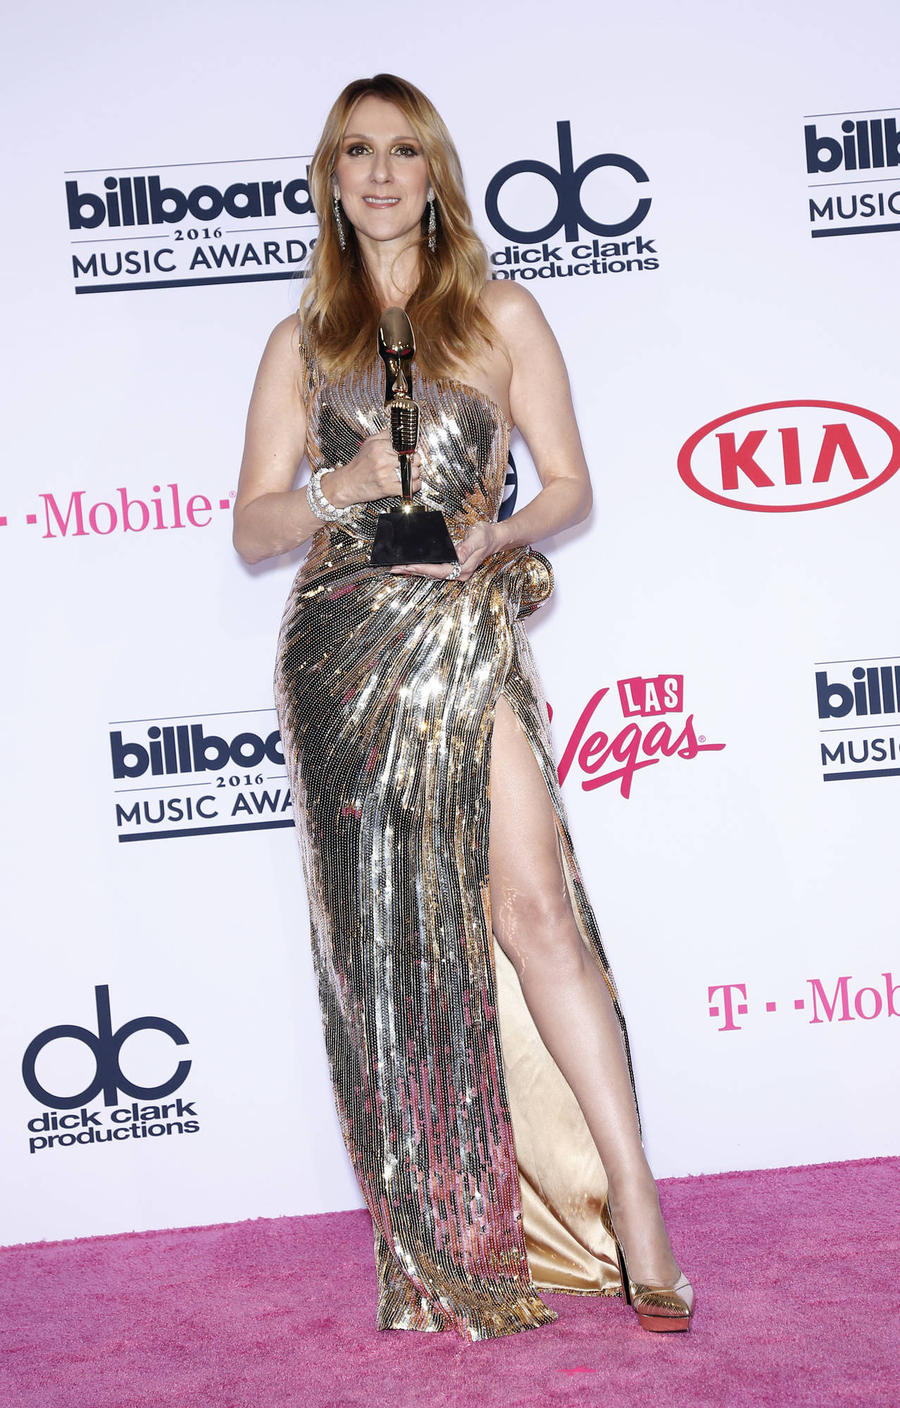 Celine Dion: 'I Thought I Was Prepared For Billboard Music Awards'